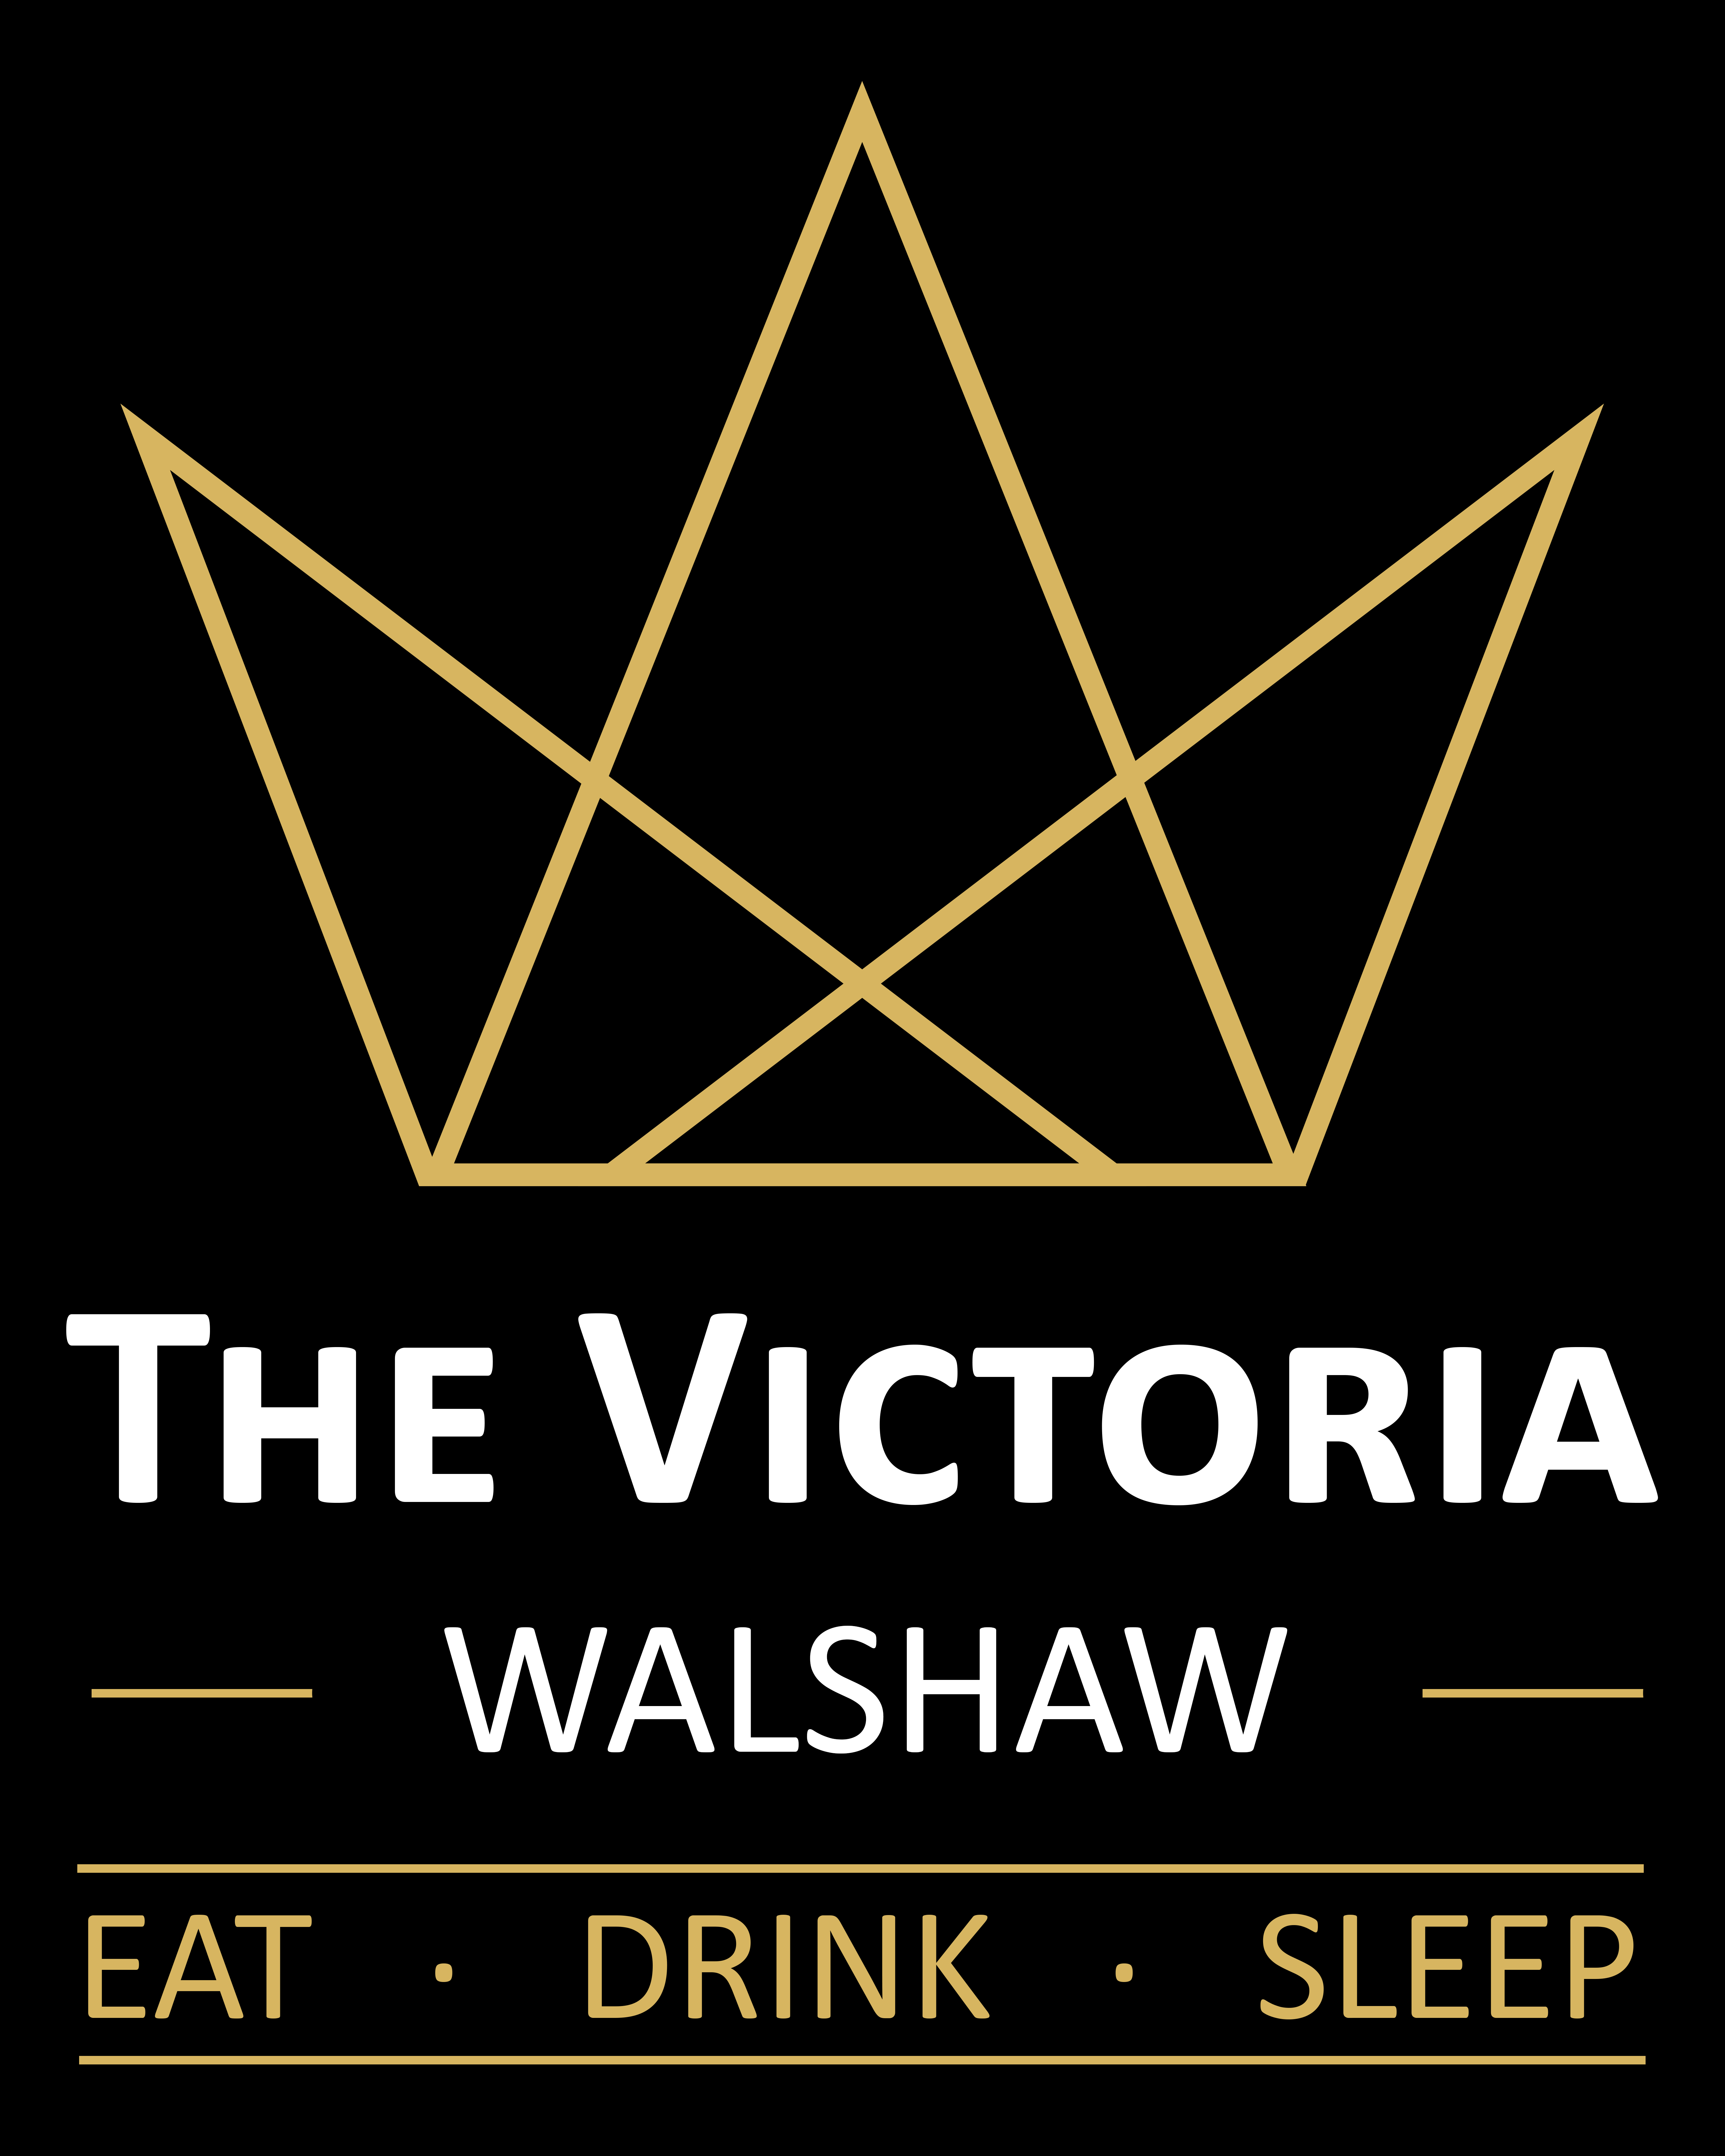 Logo of The Victoria Walshaw